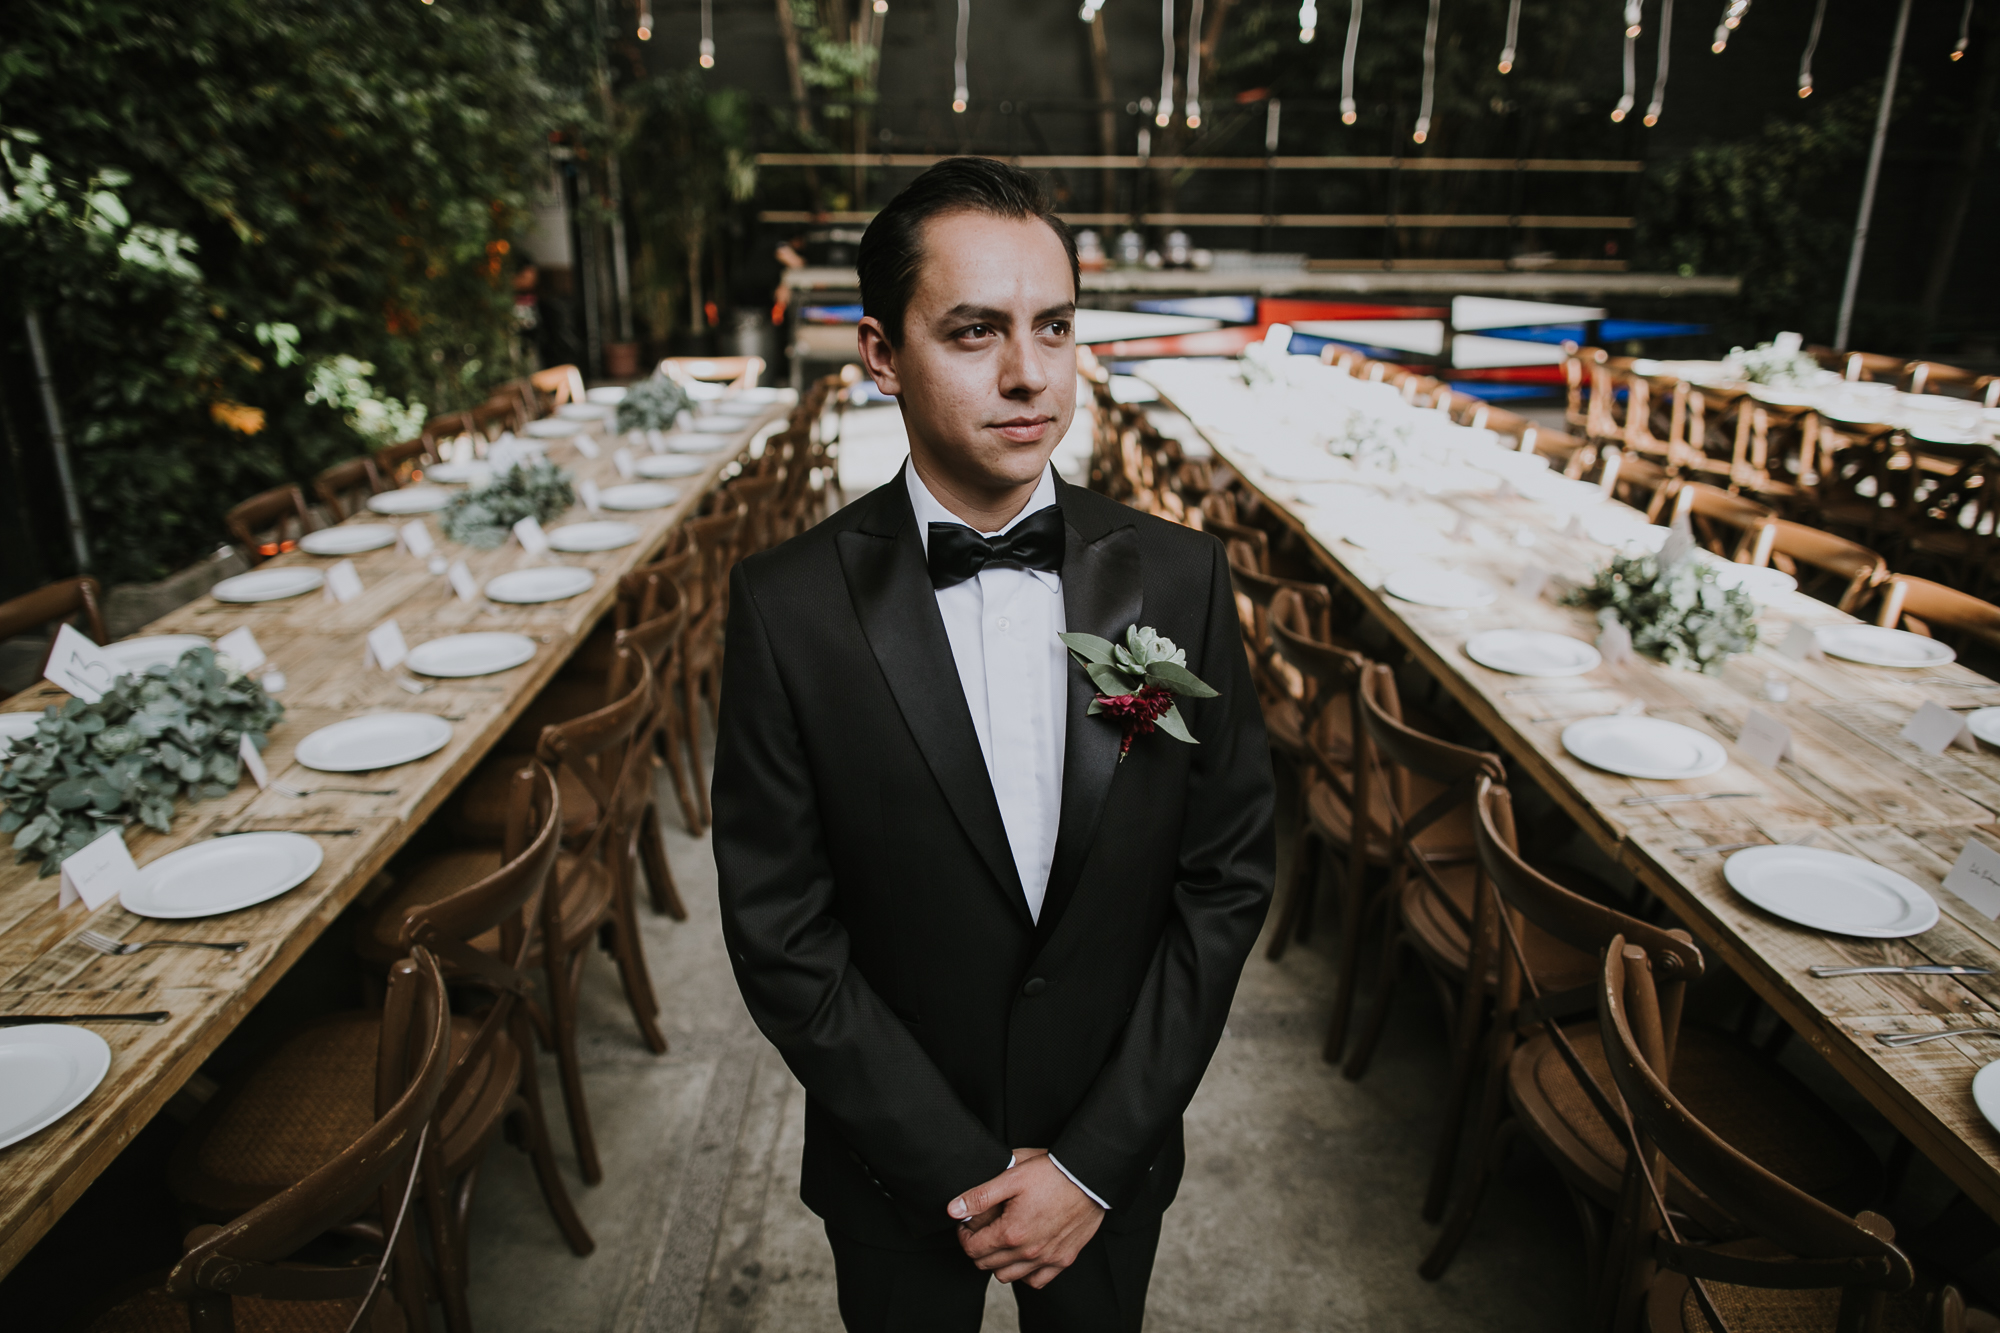 alfonso_flores_alternative_wedding_photographer_cdmx_roma_condesa_foro_indie_gissyotto-34.jpg